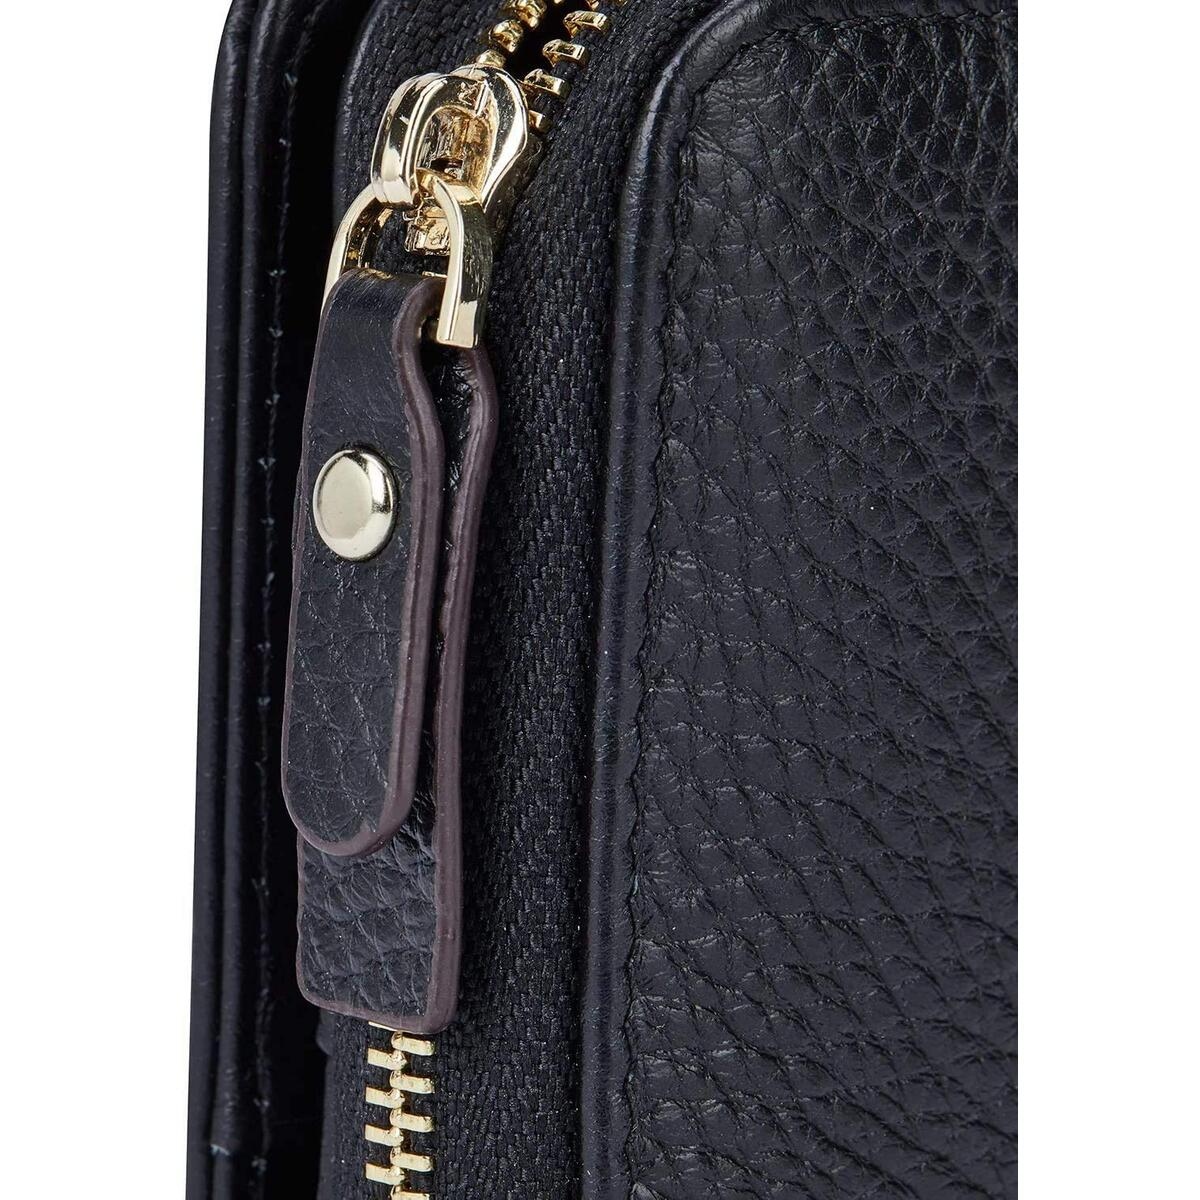 LUCKYSGY Wallets for Women RFID Blocking Leather Bifold Small Wallet Zipper Purses Card Holder with ID Window 7053 Black